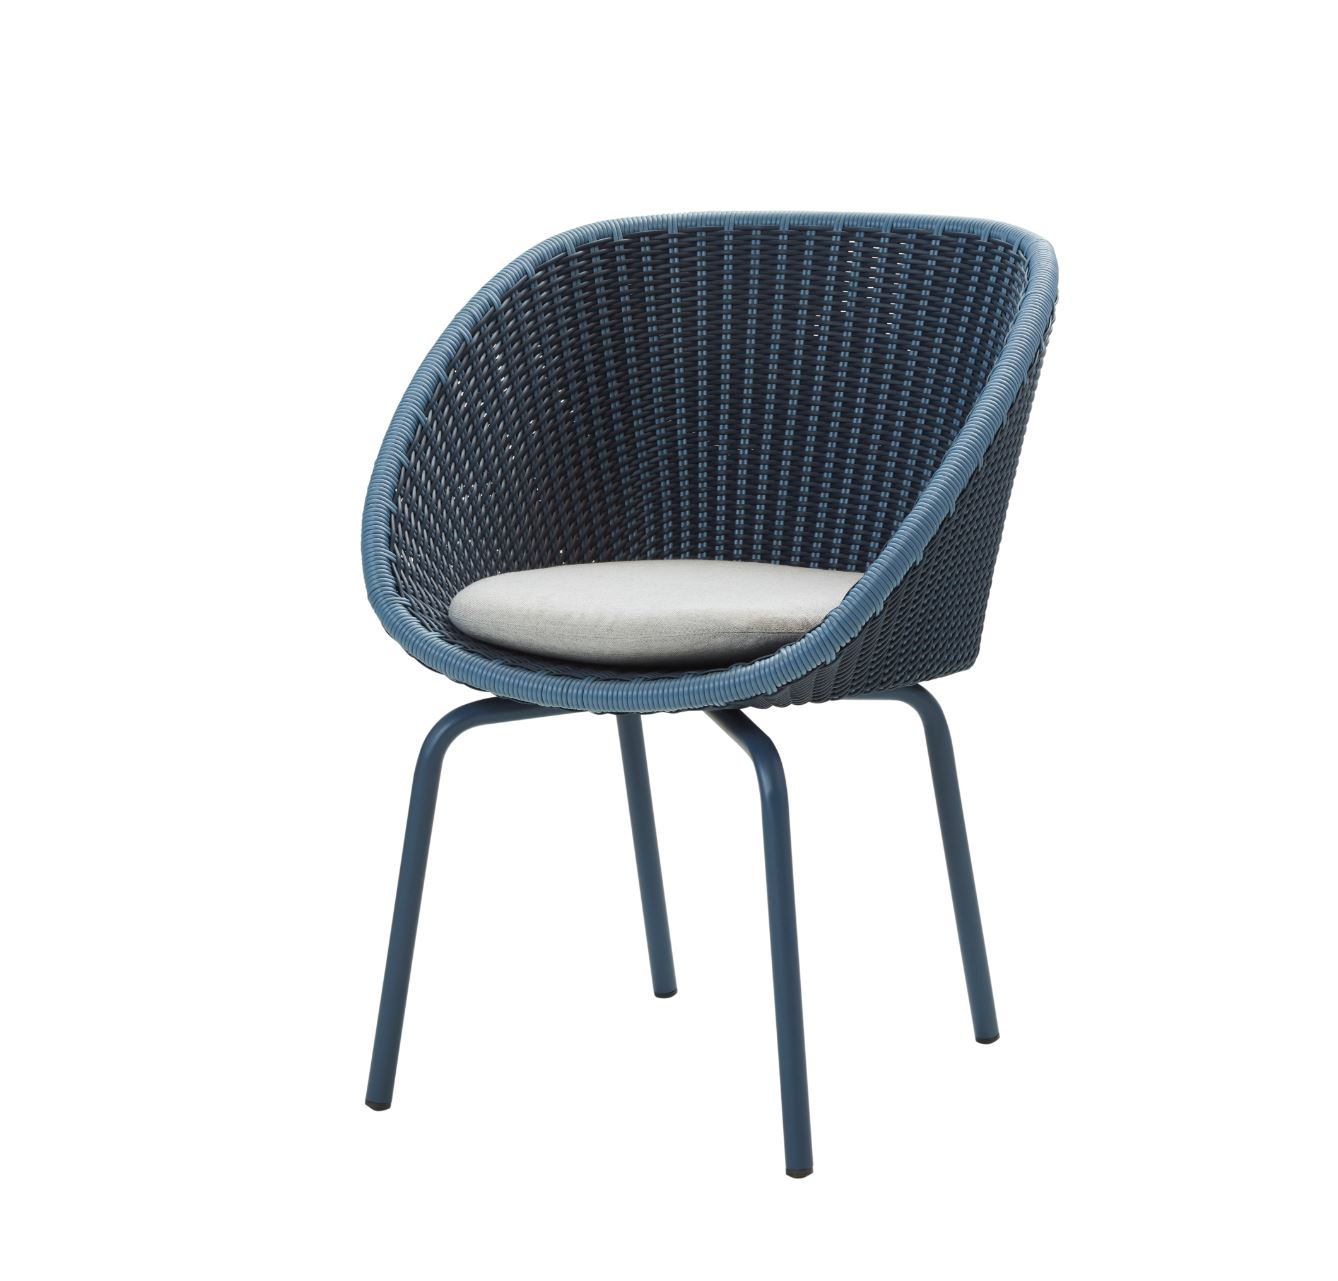 Peakcock Dining Chairs